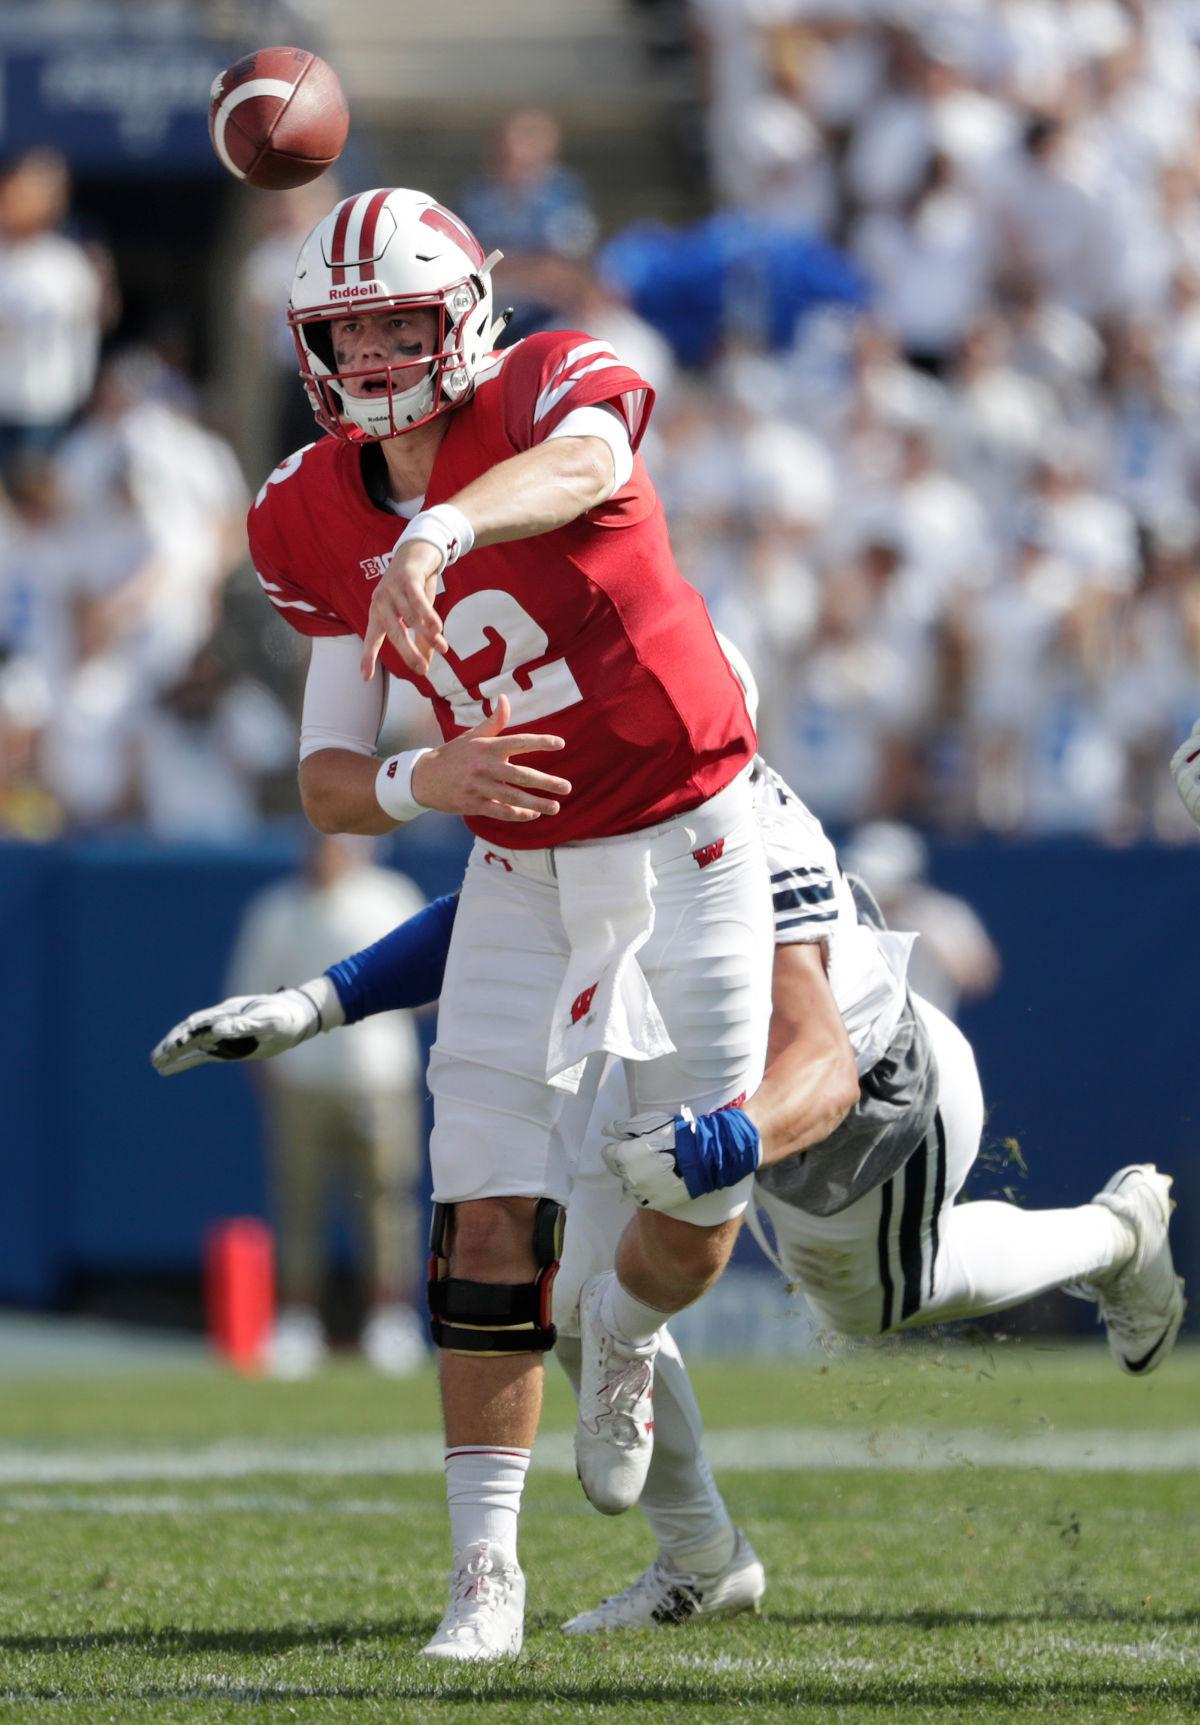 Hornibrook-B1G offensive player of the week